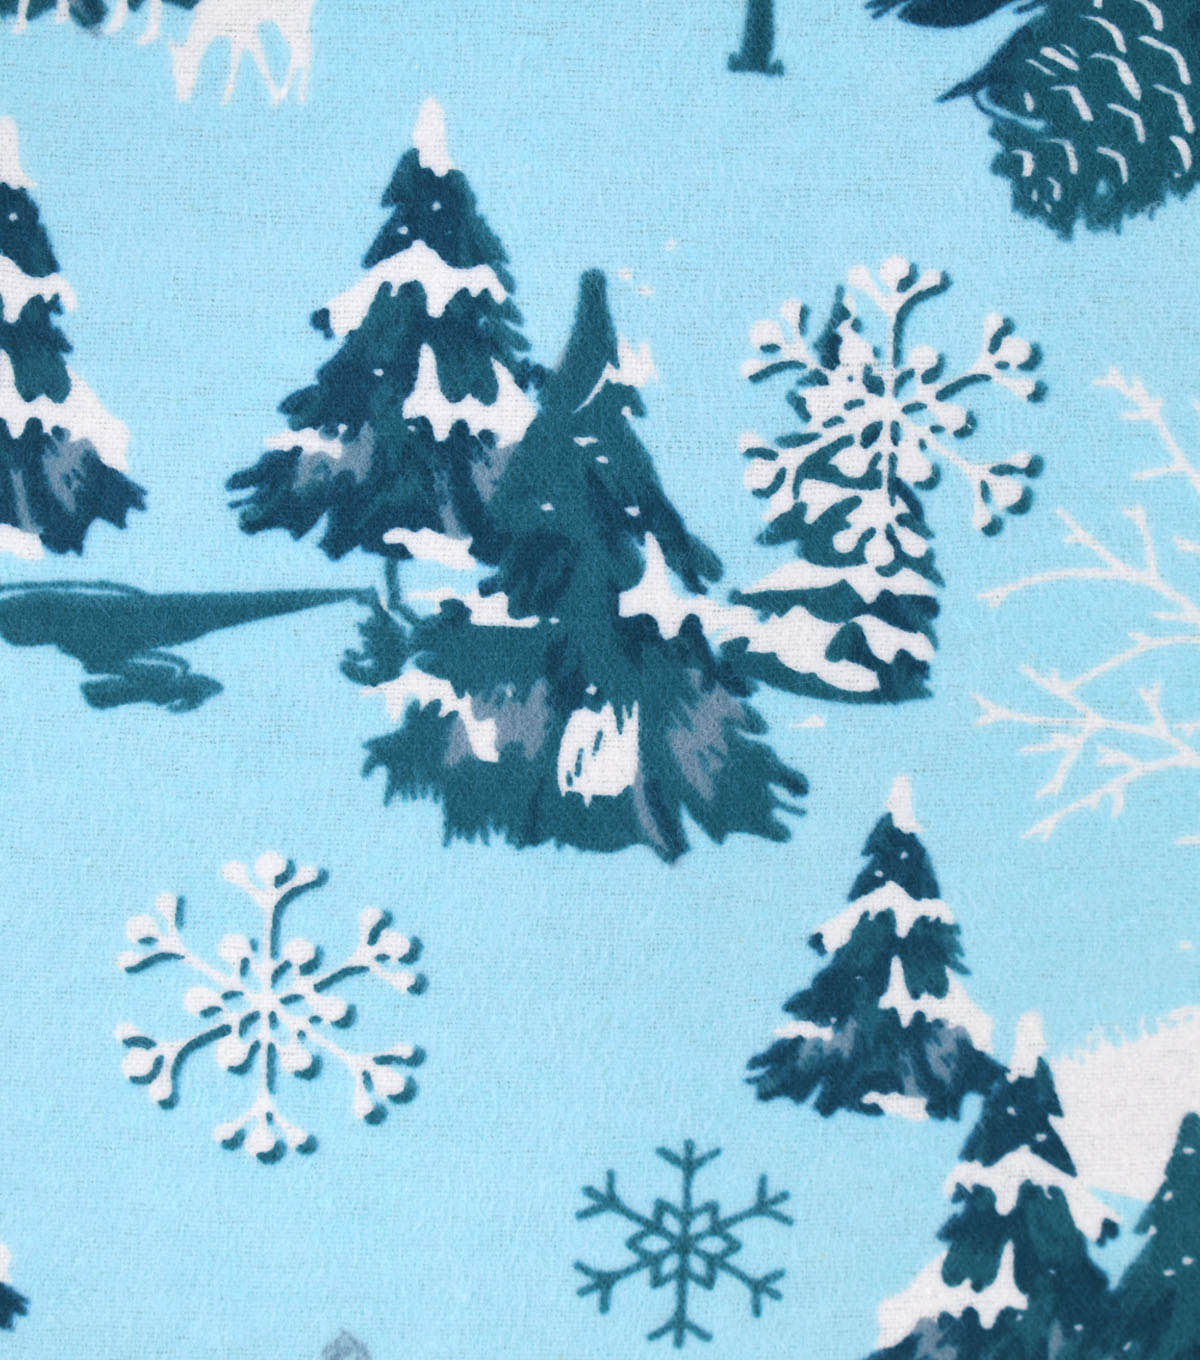 Snuggle Flannel Fabric -Icy Winter Wonderland